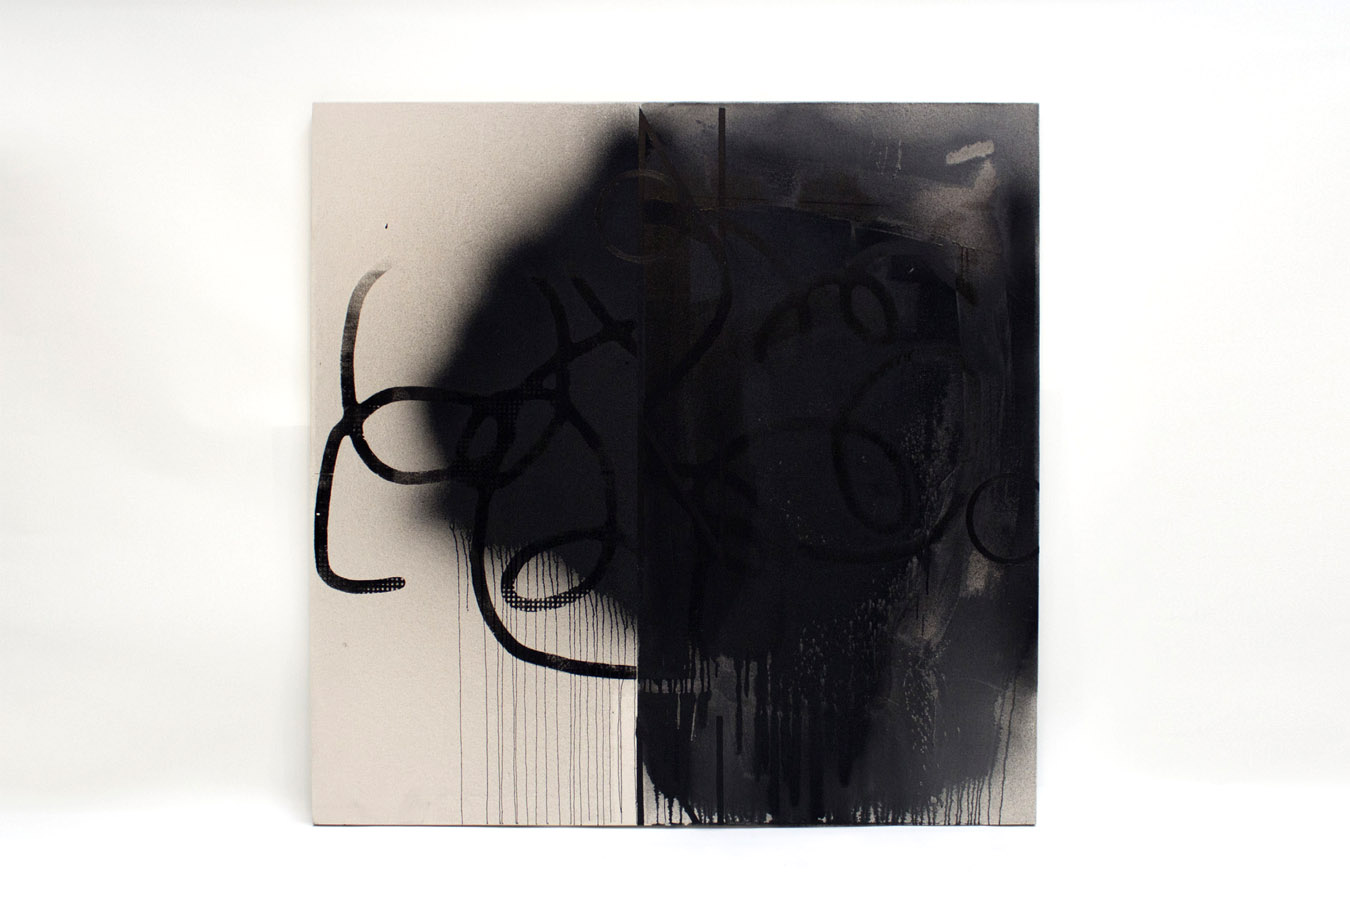 Black Image, acrylic and silkscreen ink on canvas, 60 x 60 inches, 2012